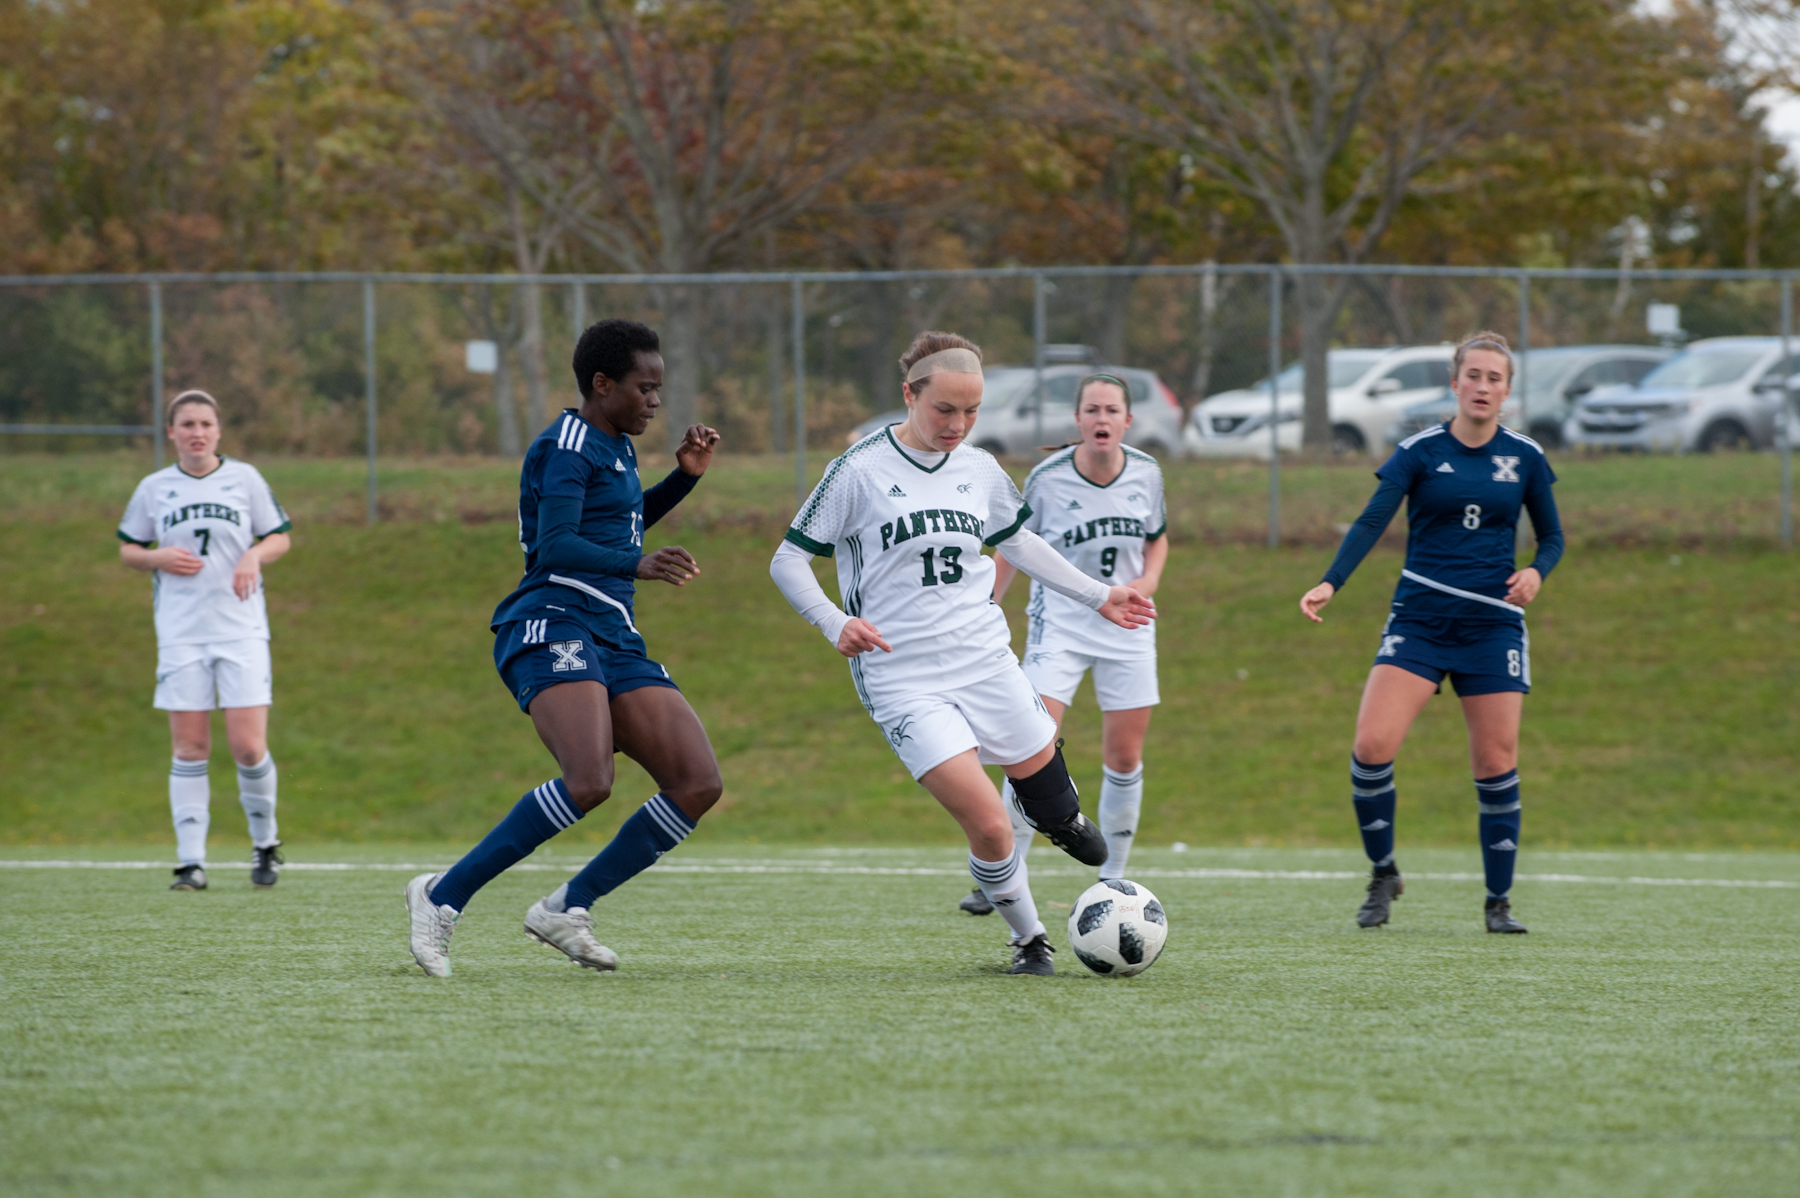 Panthers grab point in 2-2 draw with St. FX